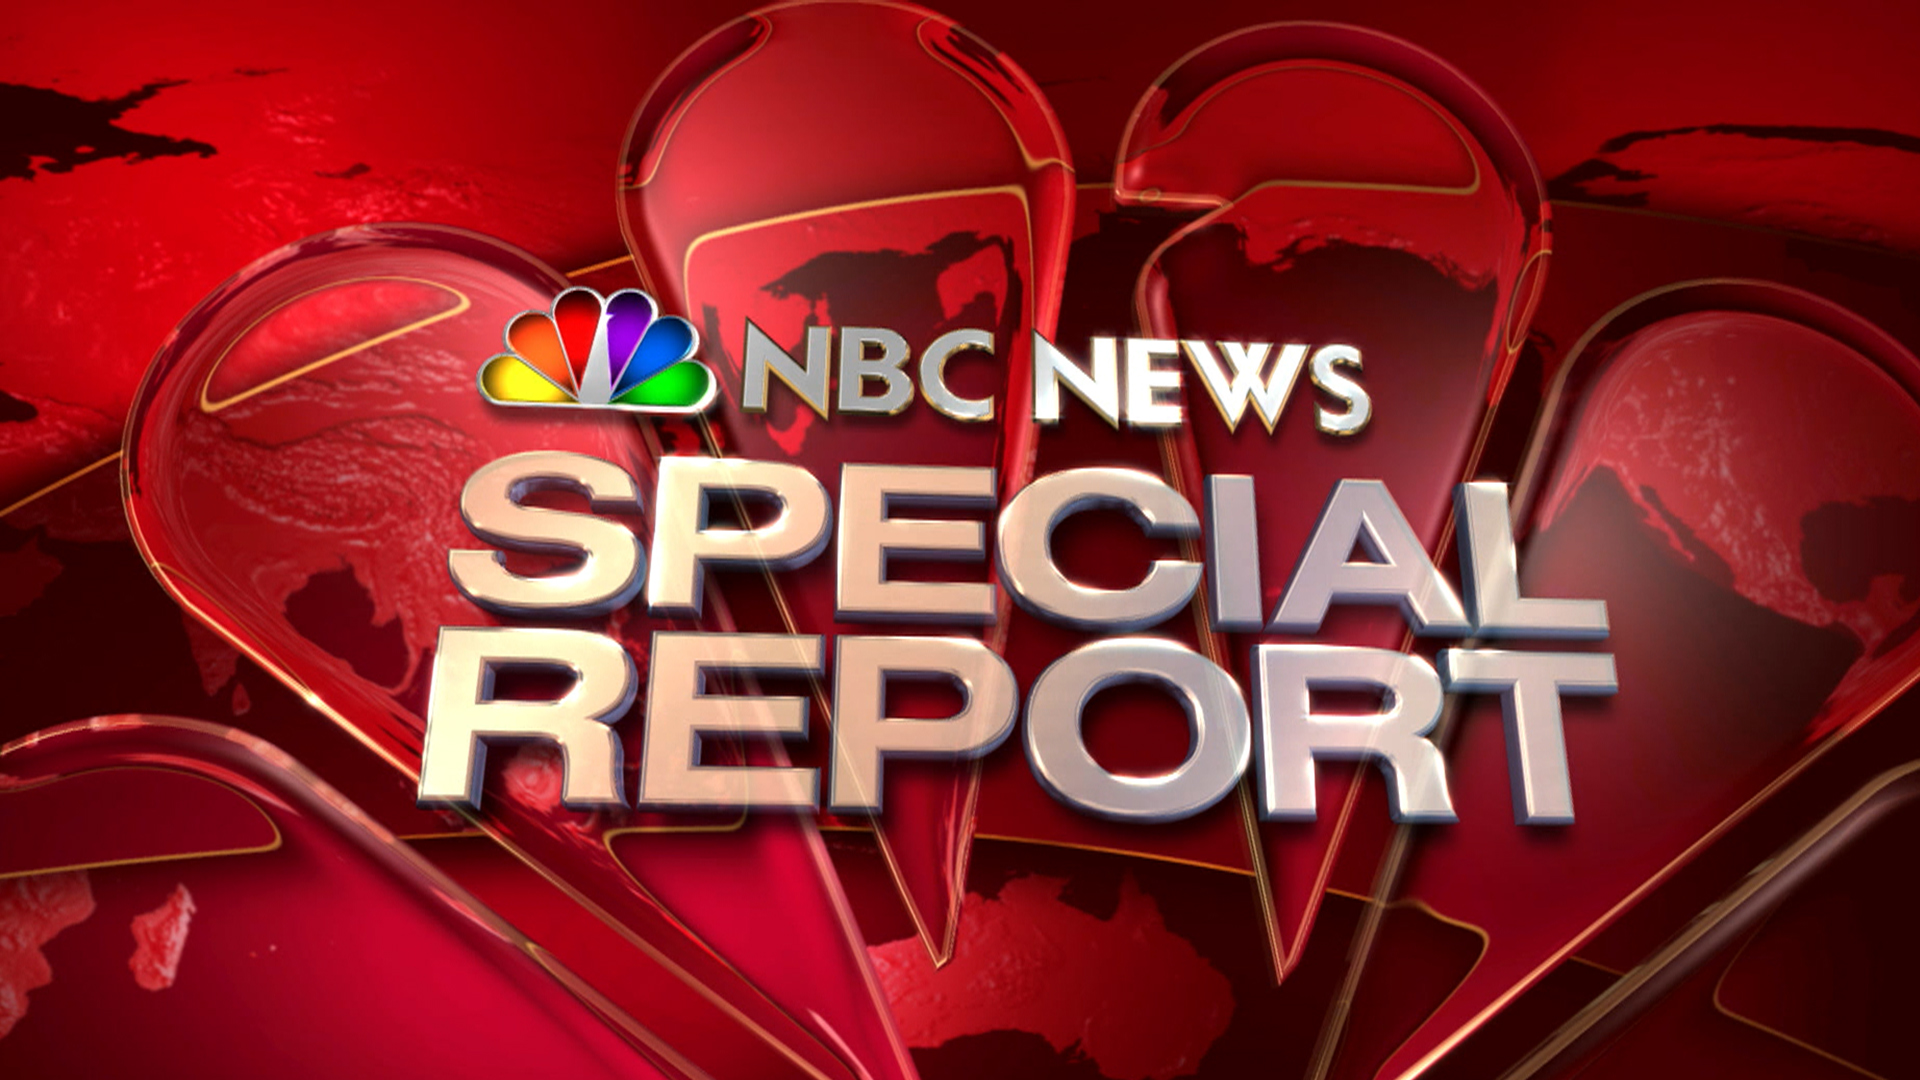 NBC Special Report: Obama Announces Shinseki's Resignation ...